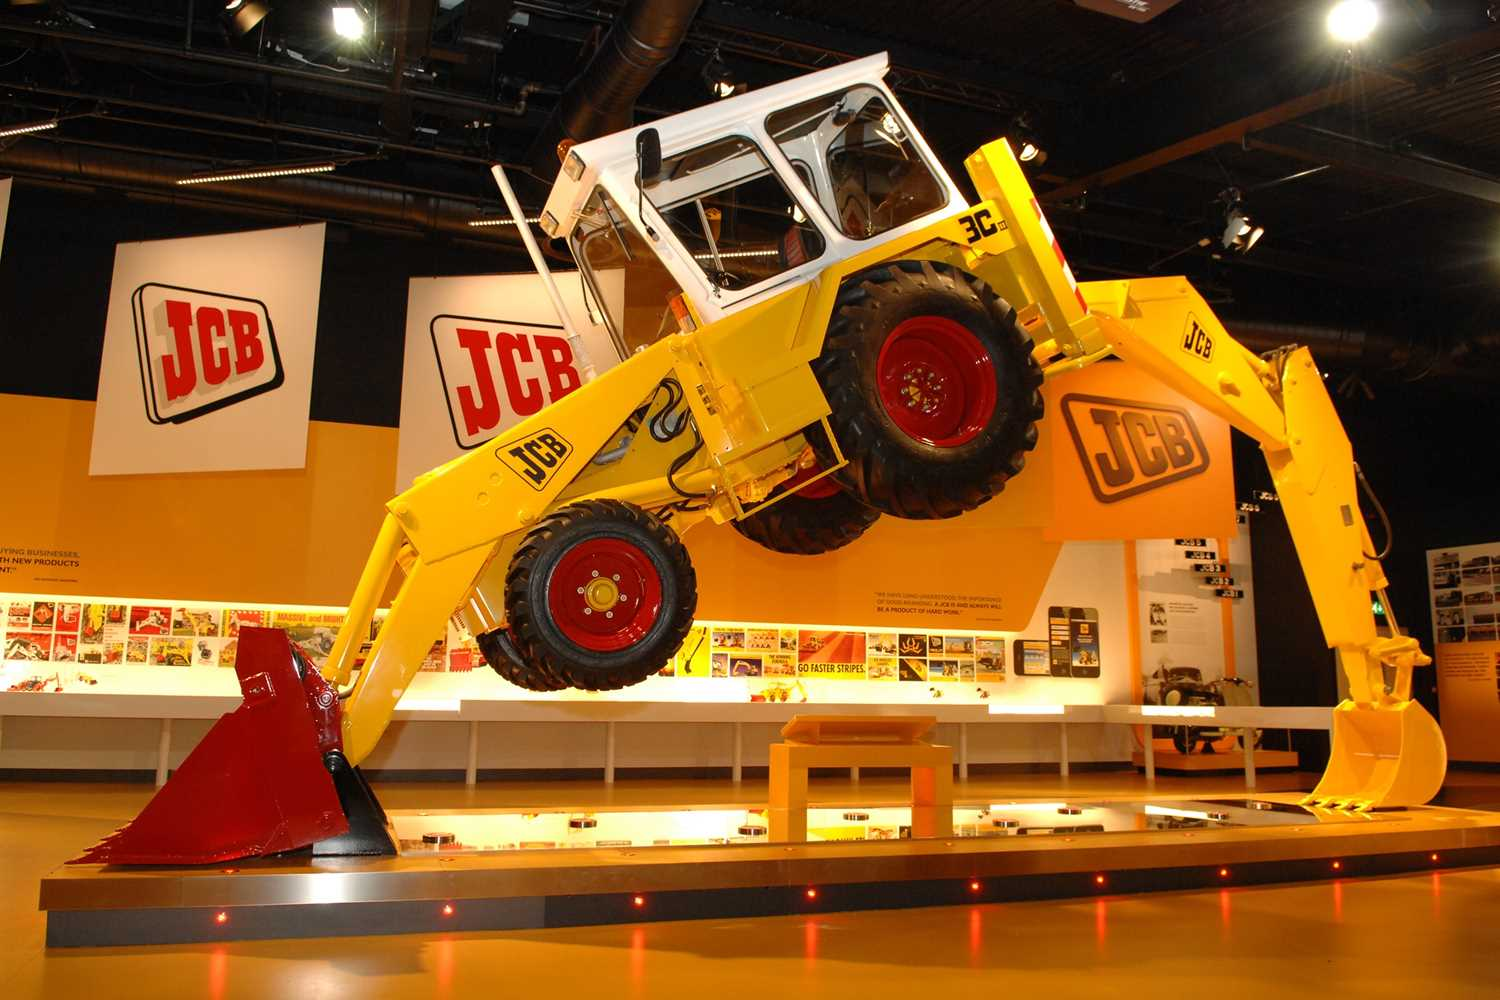 A VIP JCB Factory Tour for a Day with JCB's Managing Director, with a Delicious Organic Lunch for - Image 2 of 3